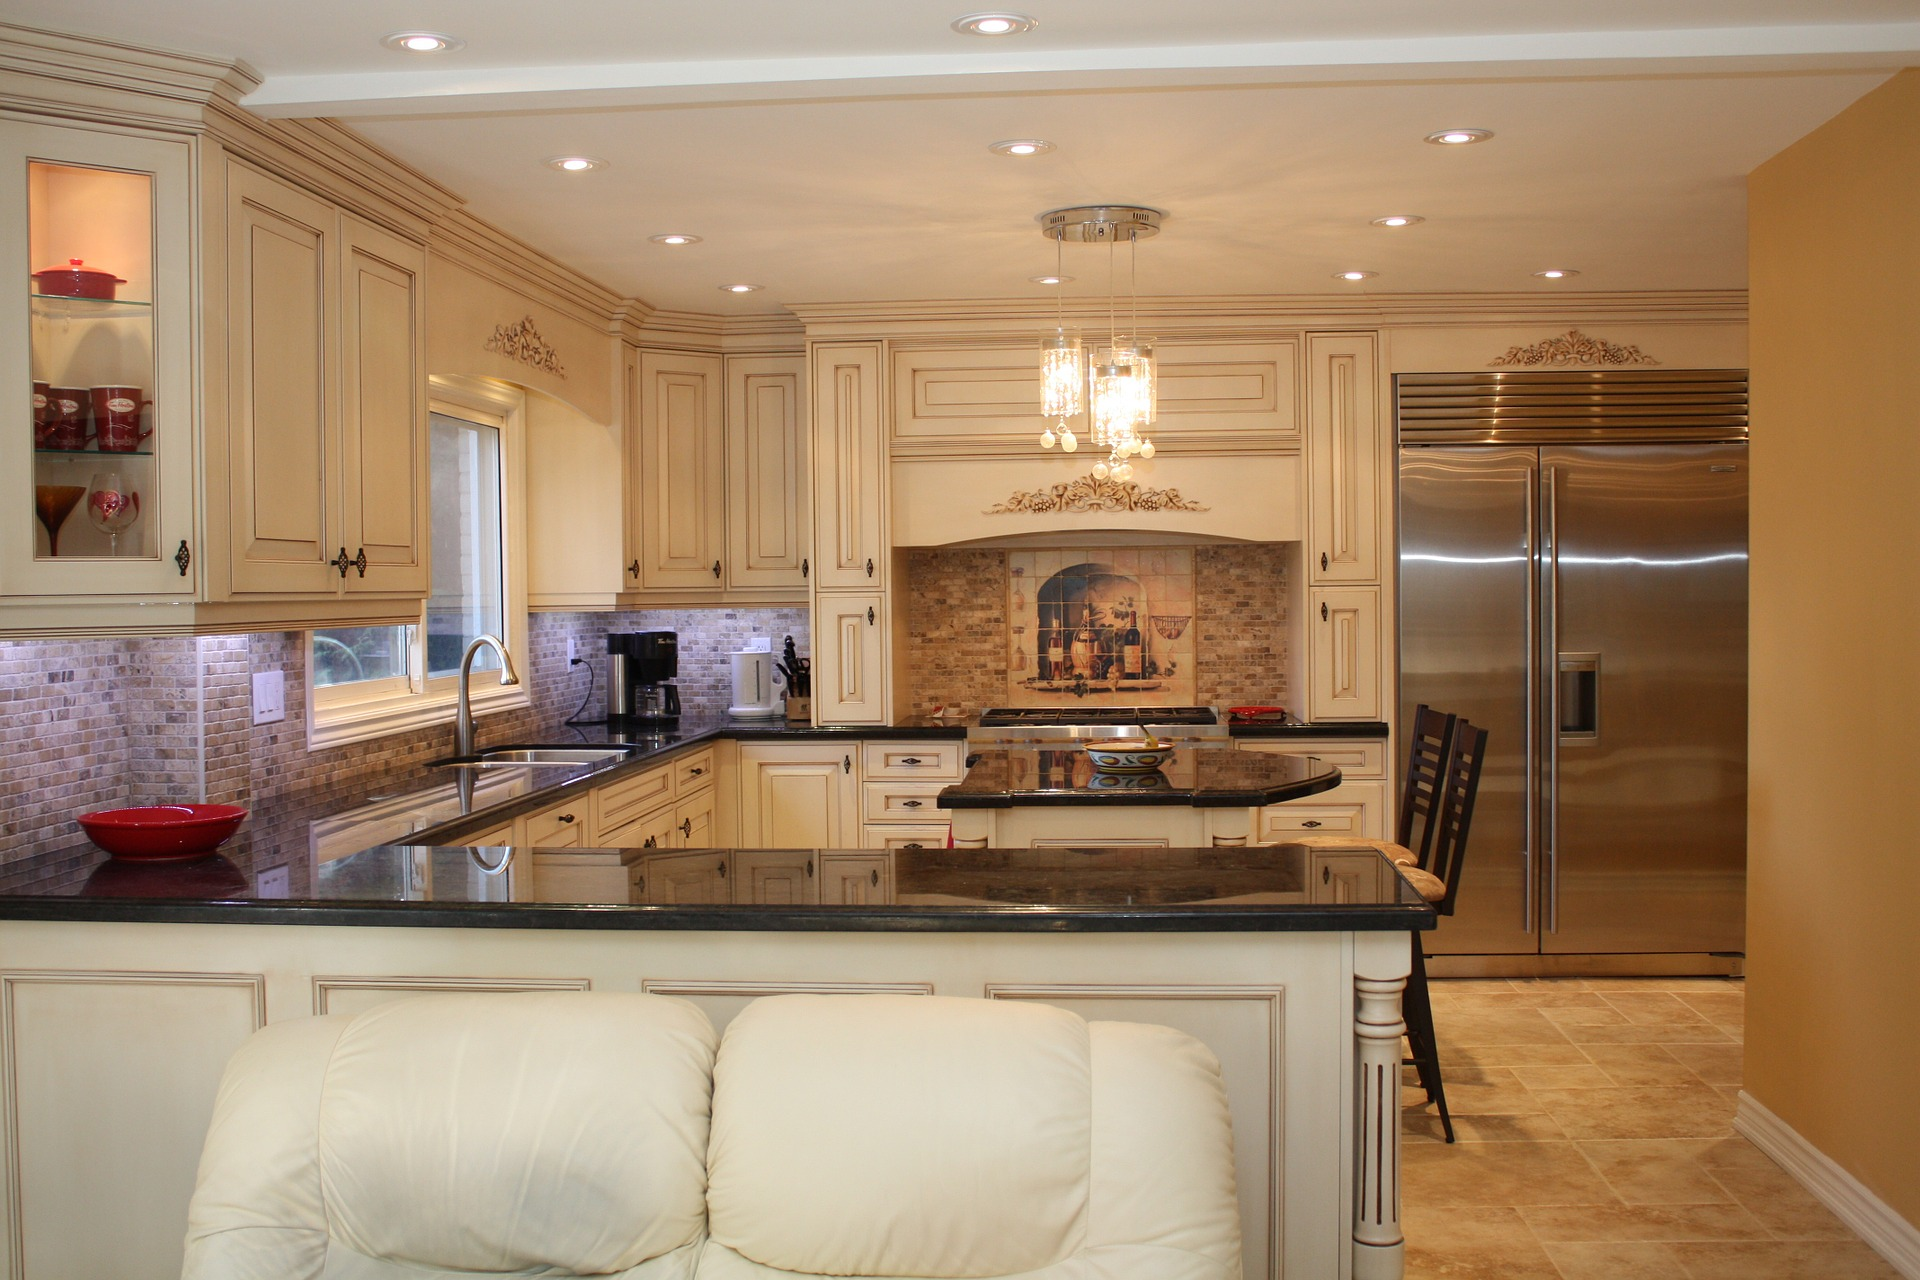 Floor To Ceiling Built In Cabinets Trending Again A K Interiors